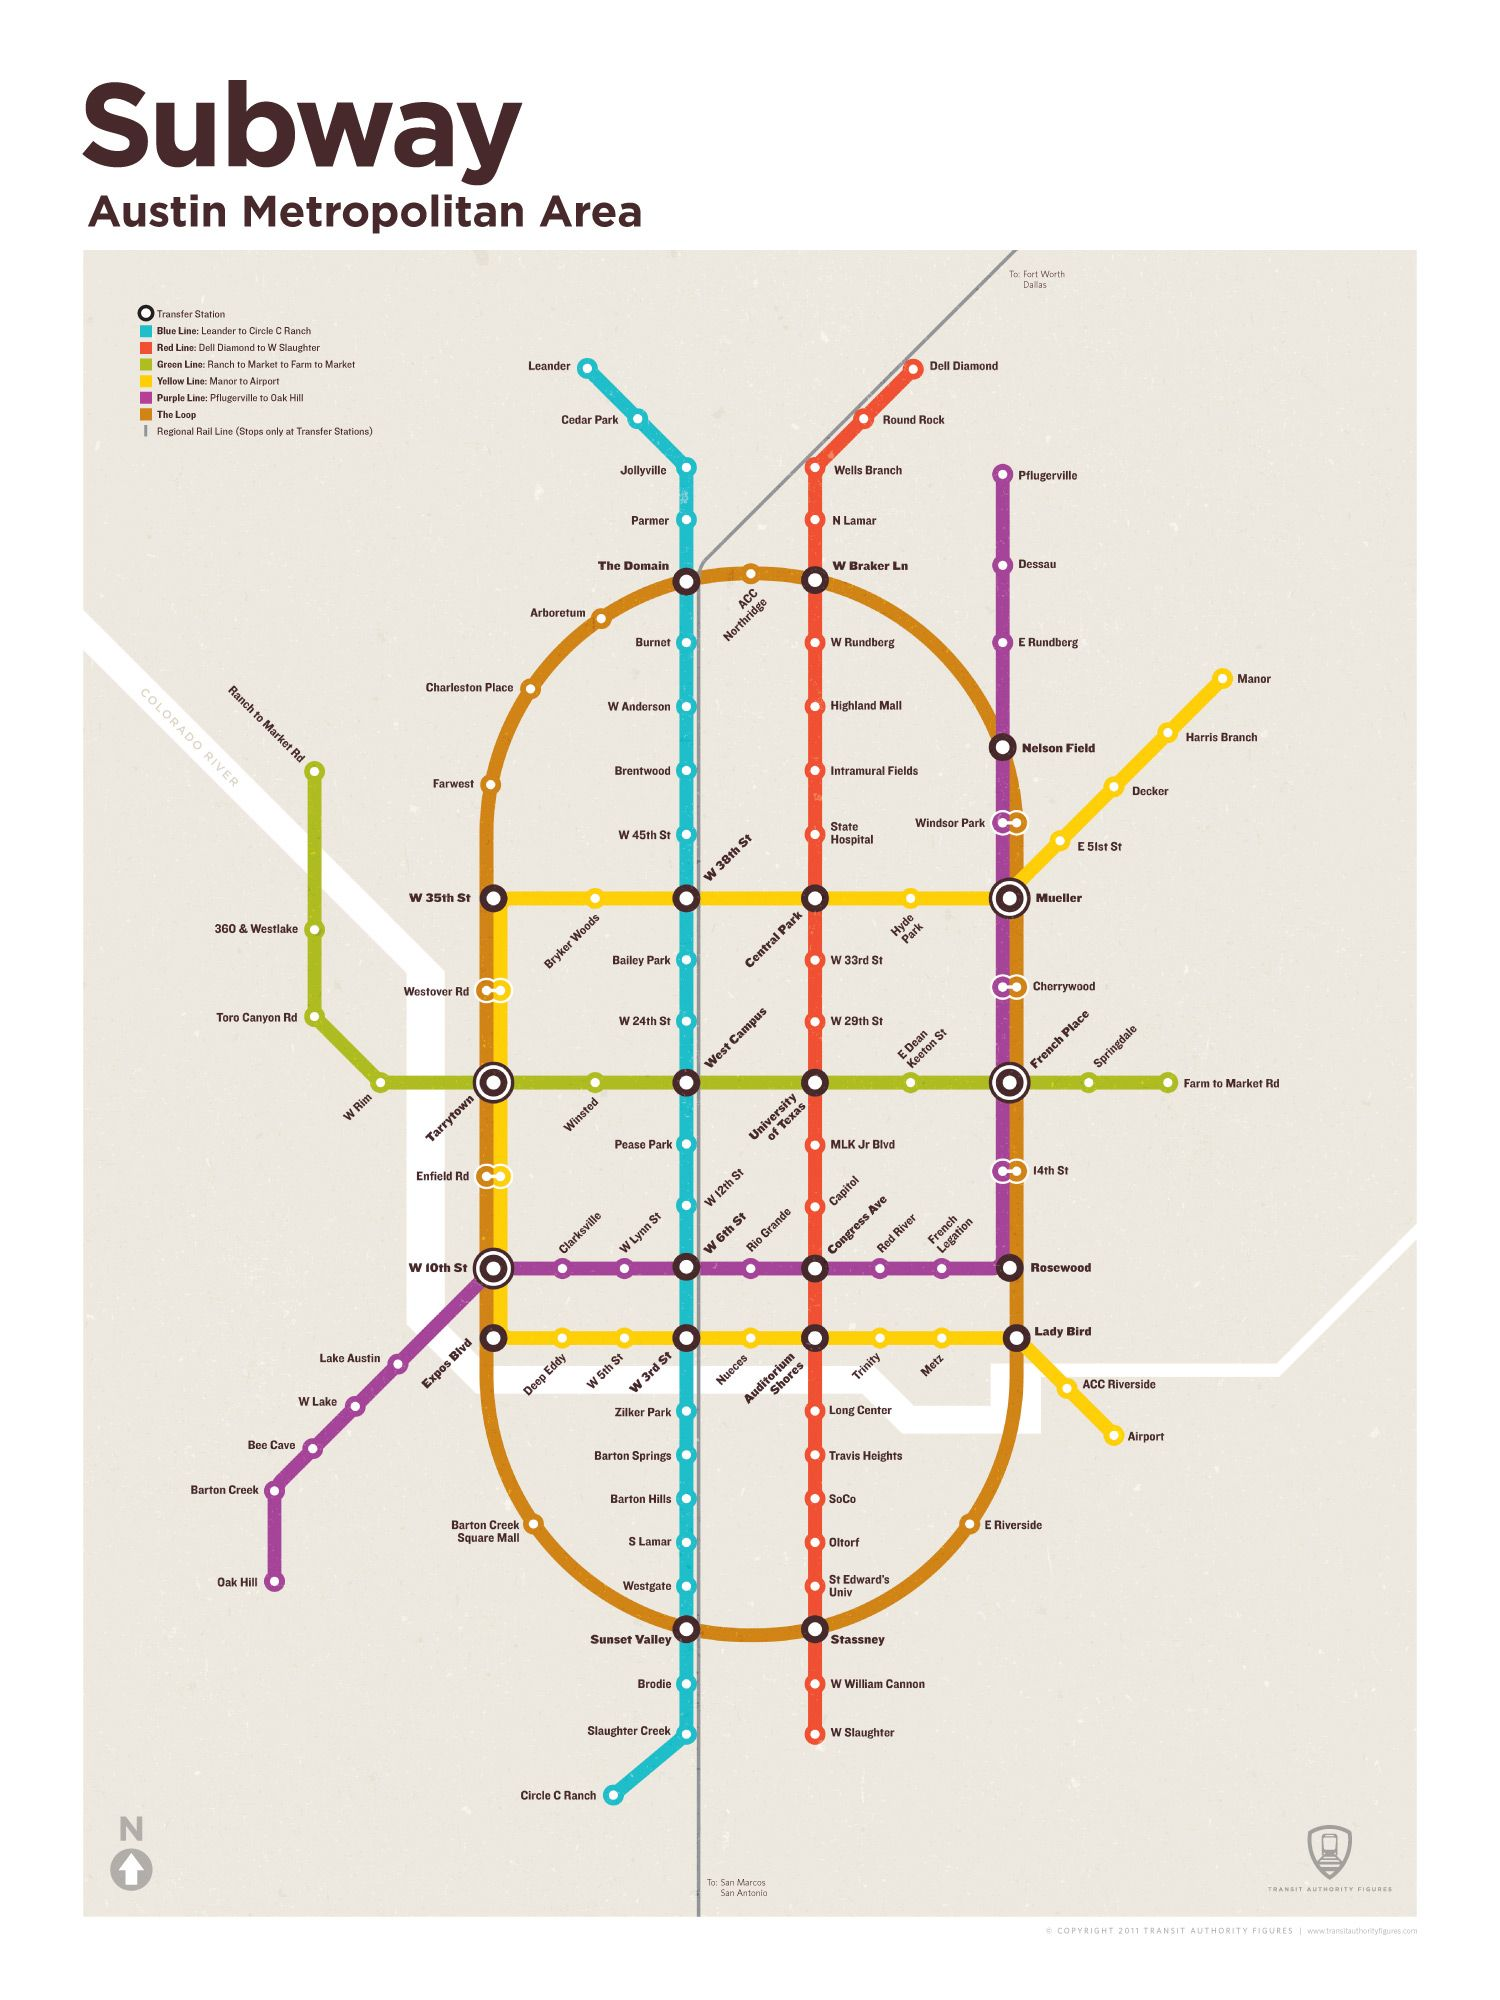 Austin Subway Map Transit Authority Figures Map Pinterest - Austin metro area map